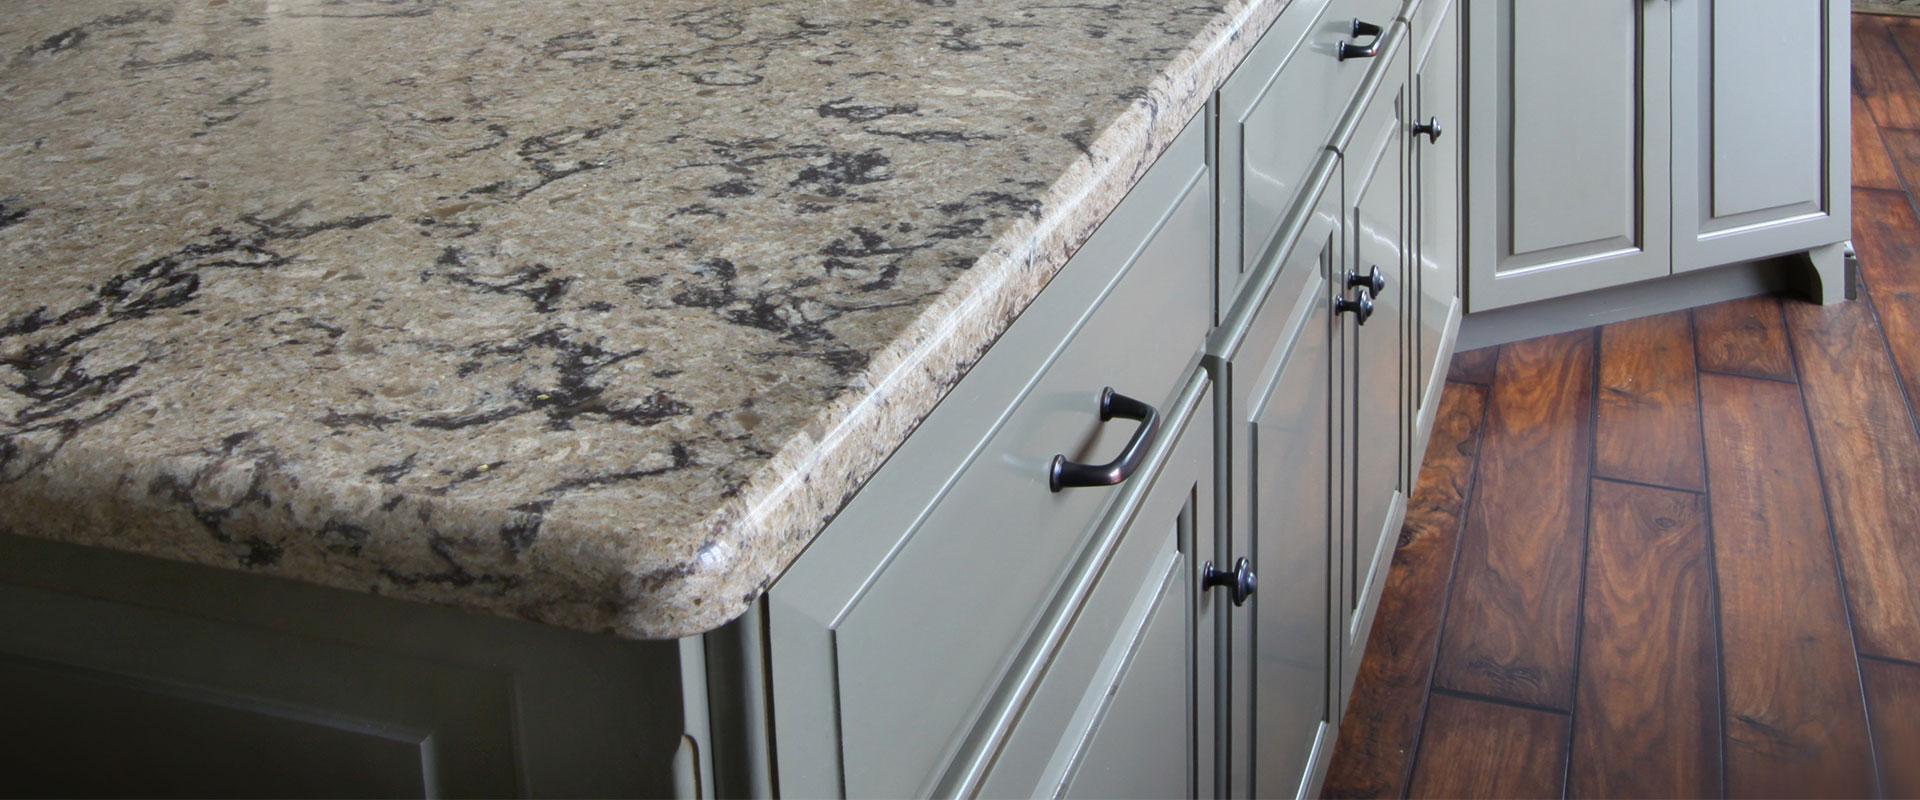 Granite Countertops West Chester Pa Kitchen And Bathroom Countertop Installation In Lancaster